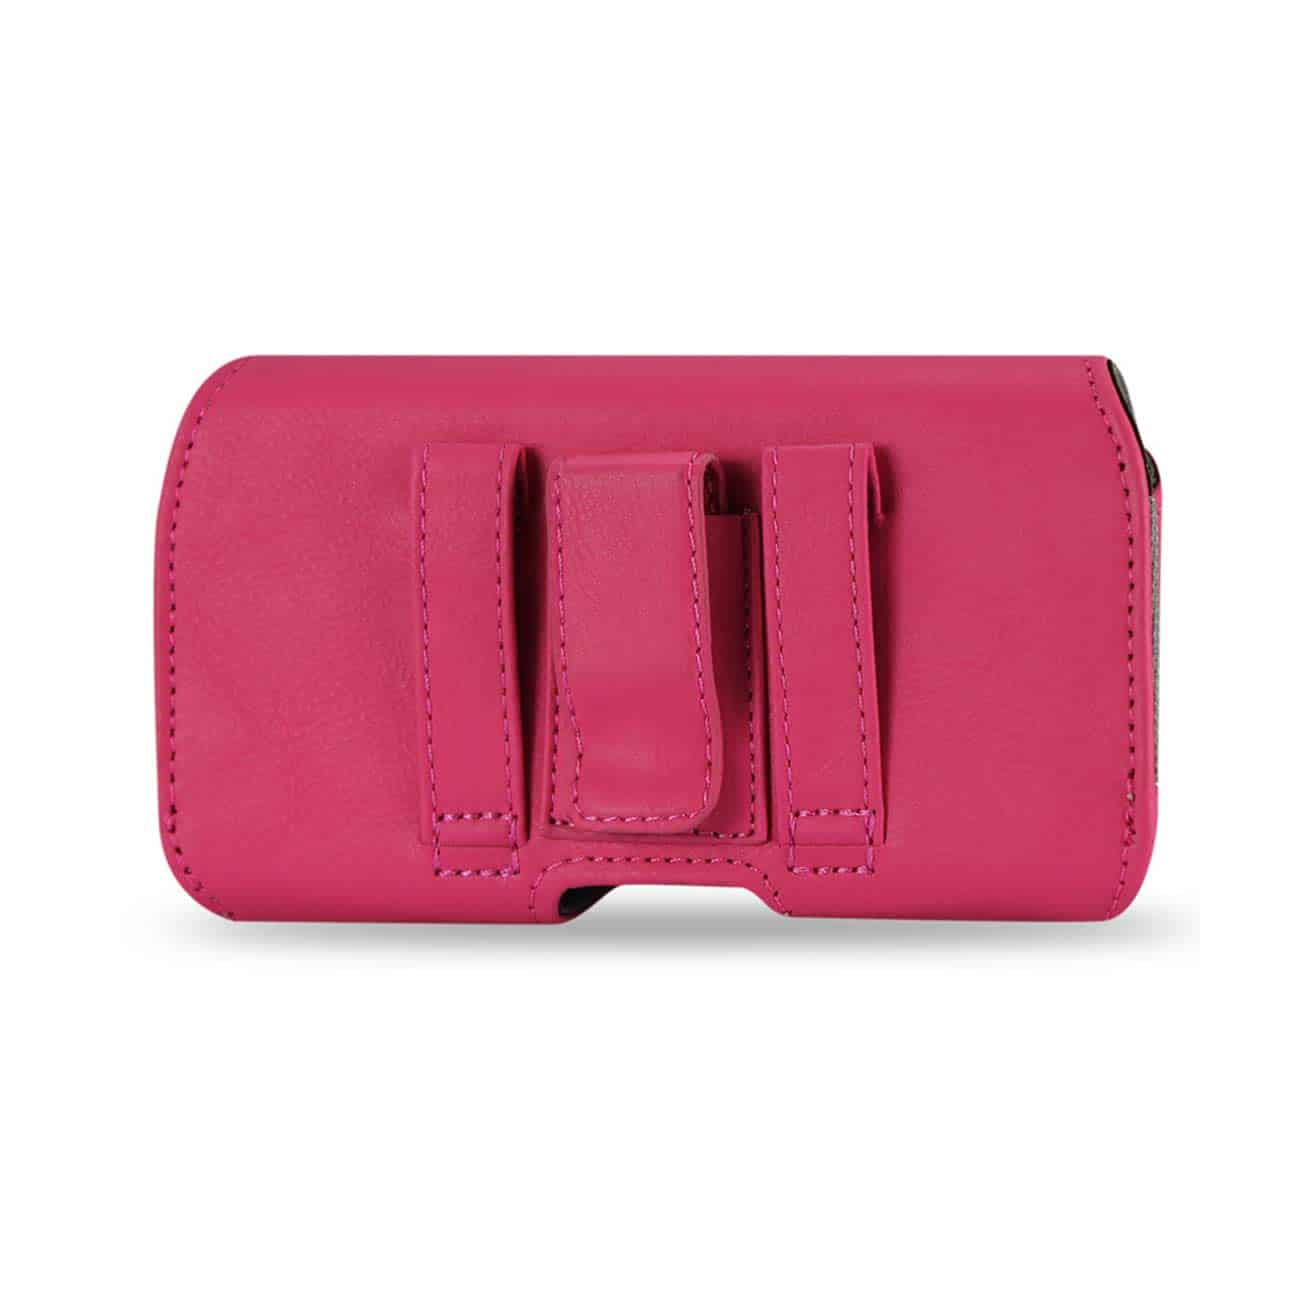 HORIZONTAL Z LID LEATHER POUCH SAMSUNG GALAXY NOTE 3 PLUS HOT PINK